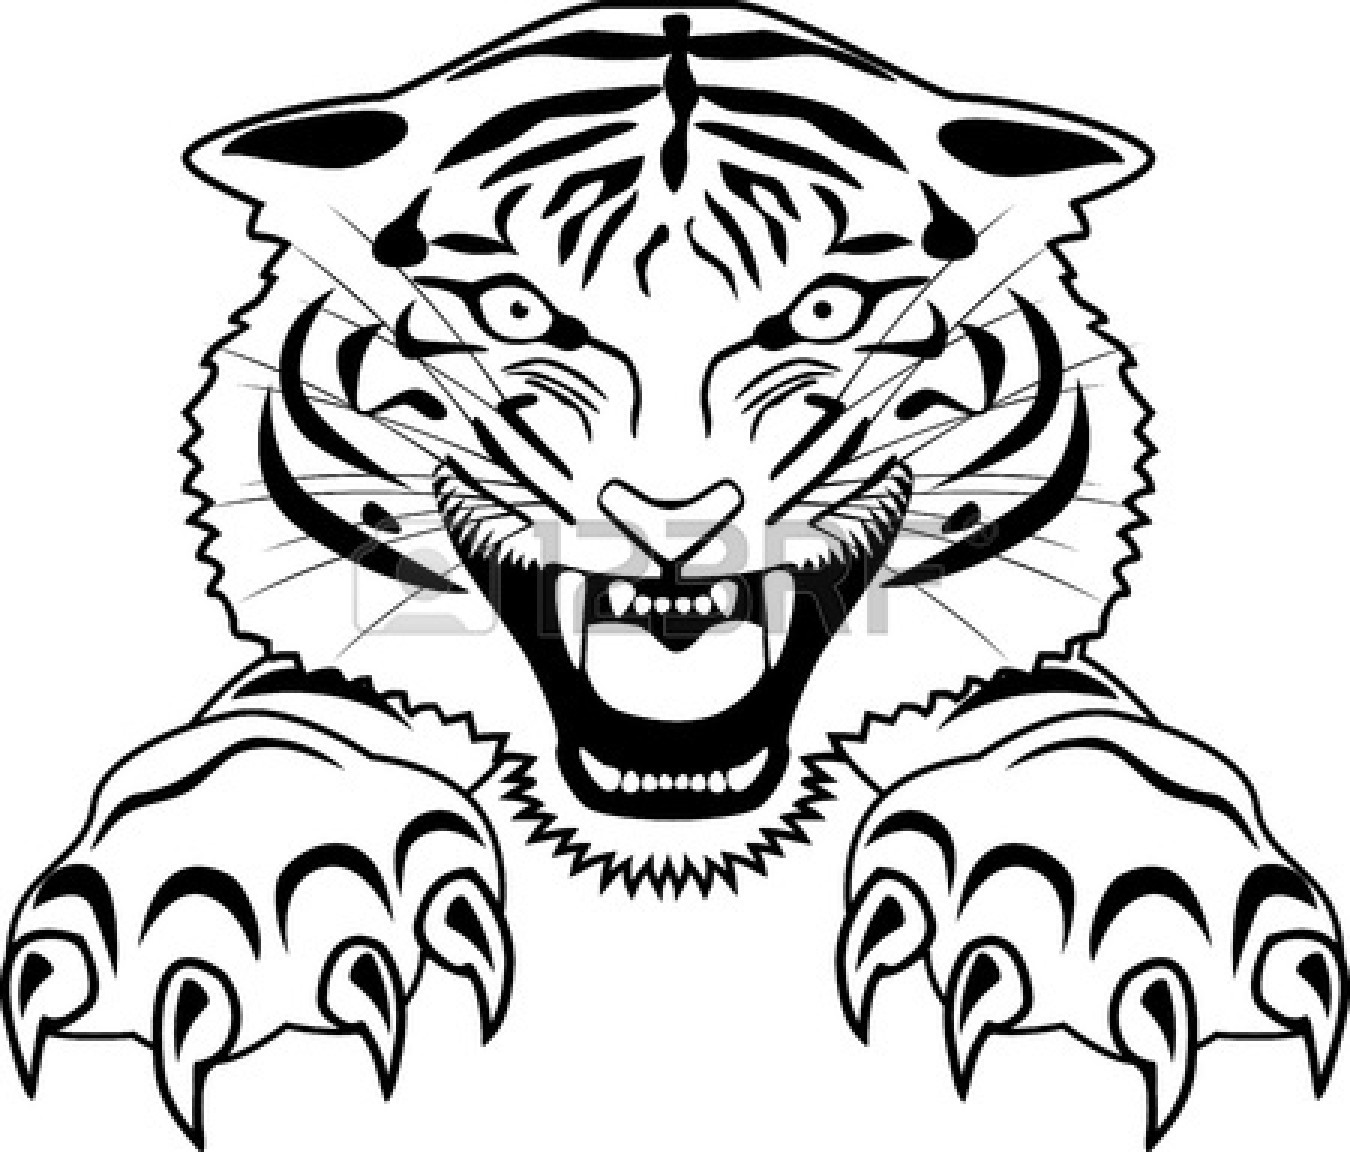 1350x1152 Roaring Tiger Outline Clipart